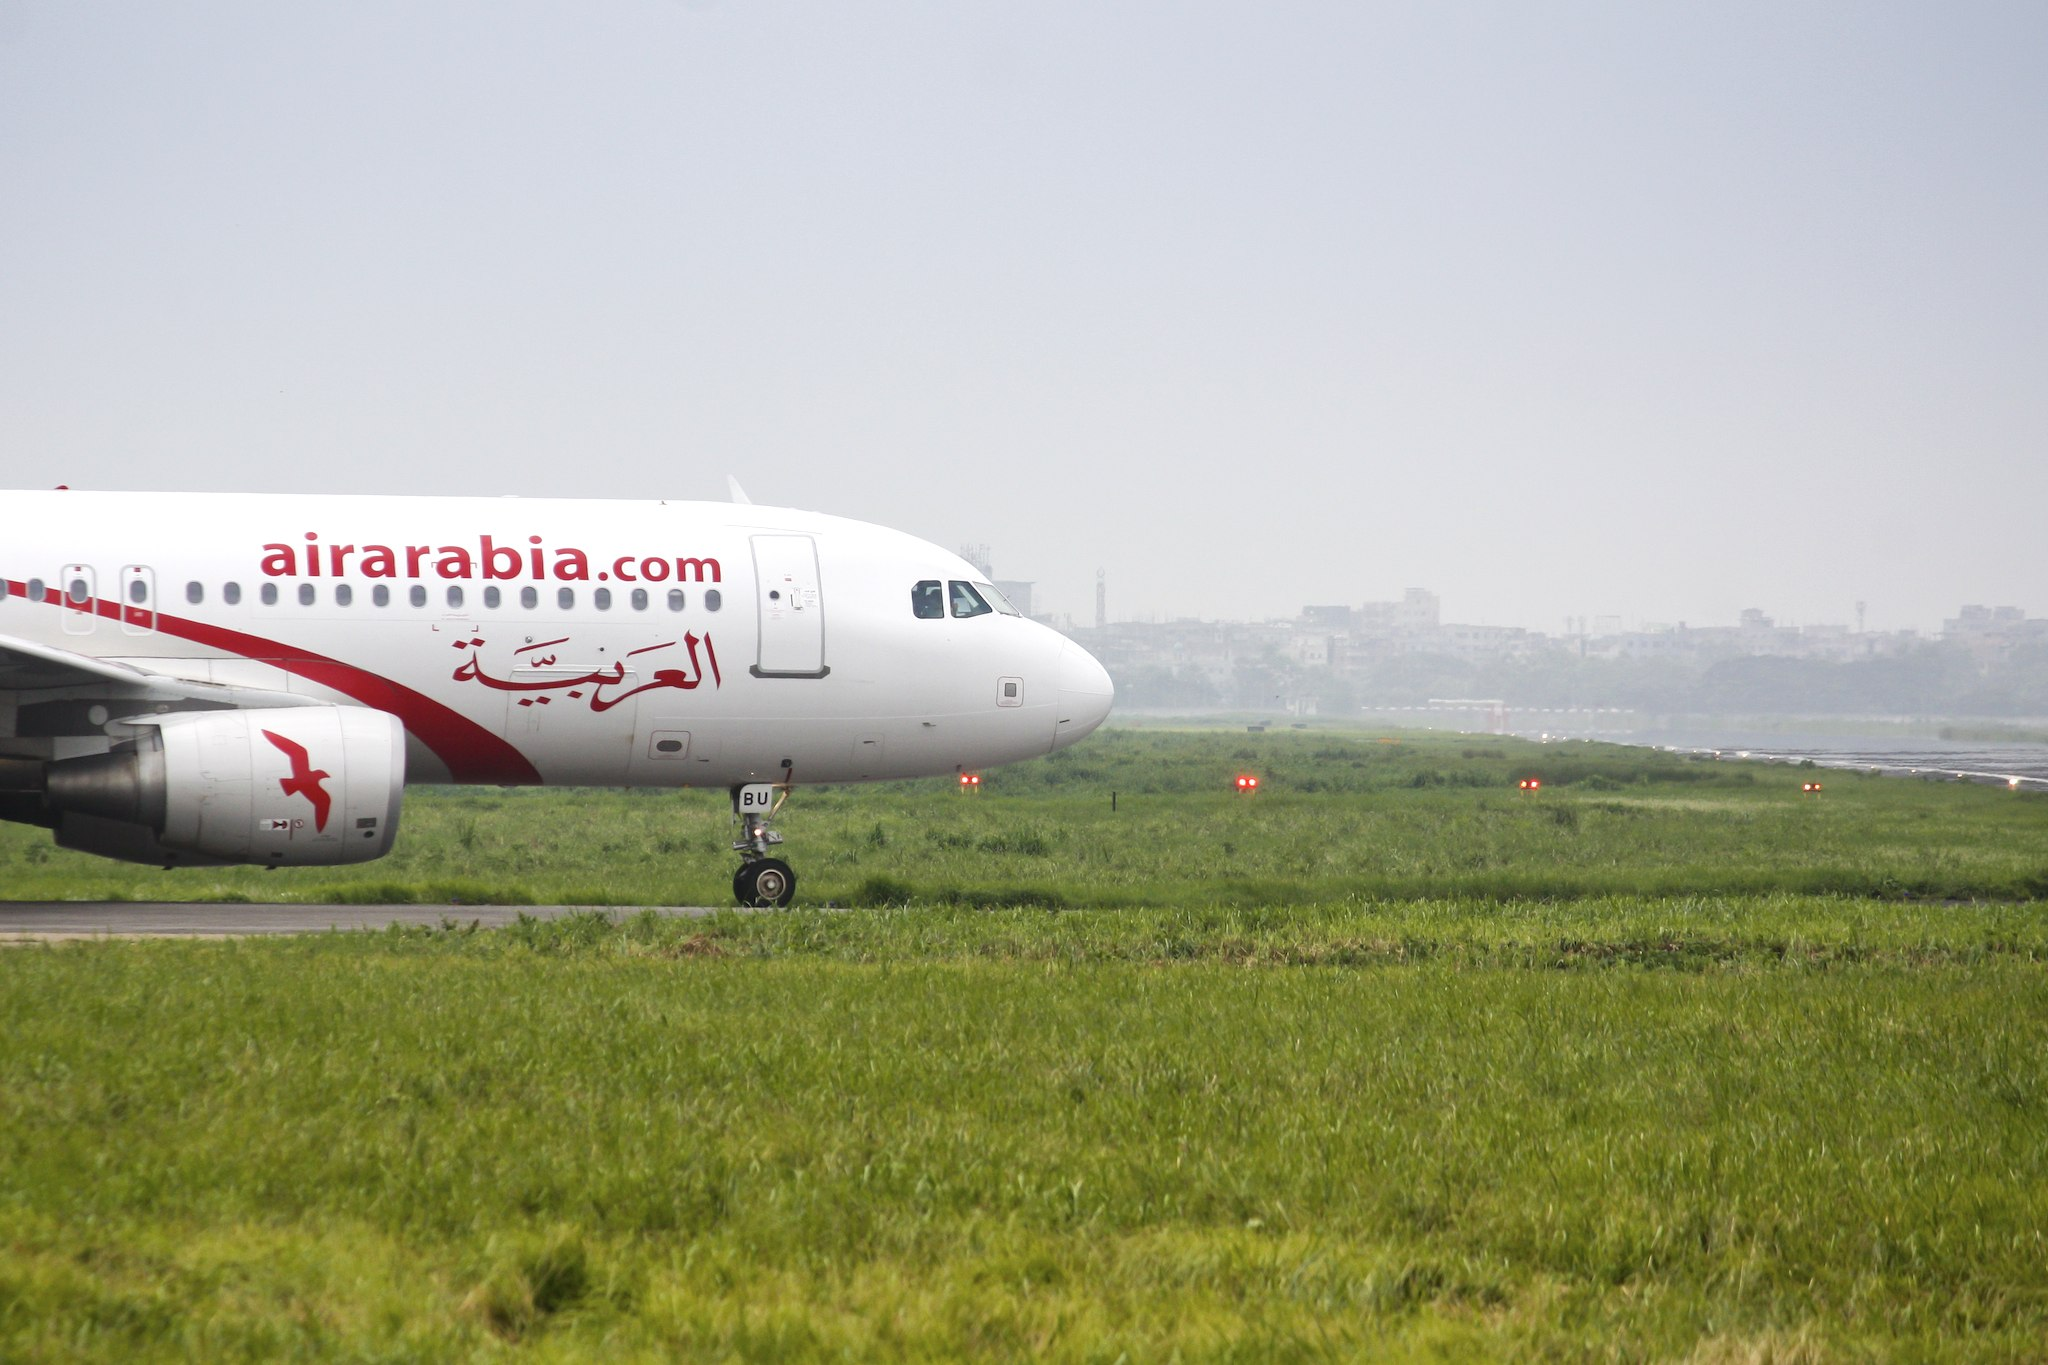 A6-ABU Airbus A320-214 Air Arabia Taxying To Runway at Hazrat Shahjalal International Airport par Faisal Akram sous (CC BY-SA 2.0)